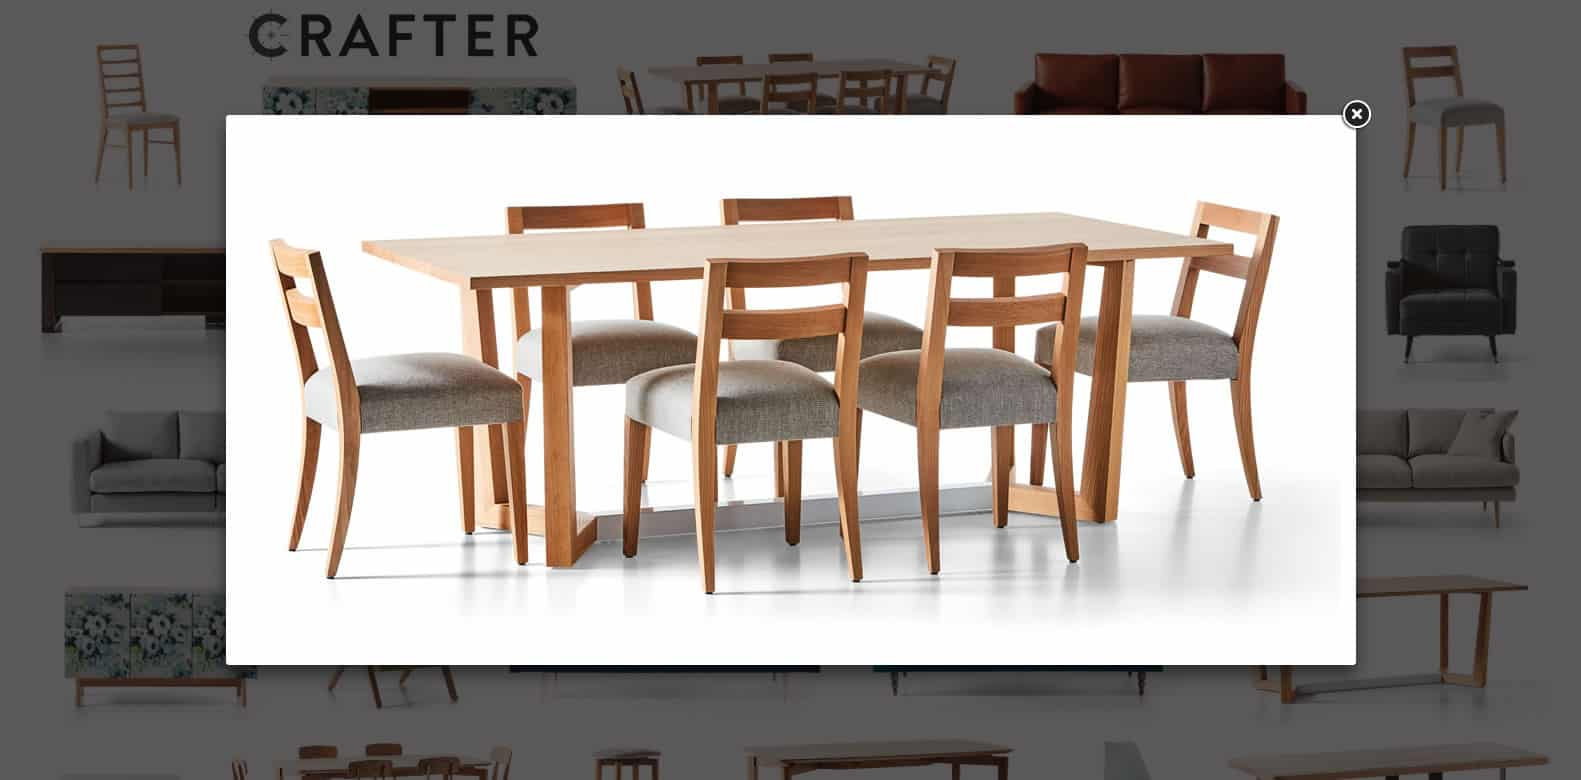 Crafter Web Design - Table